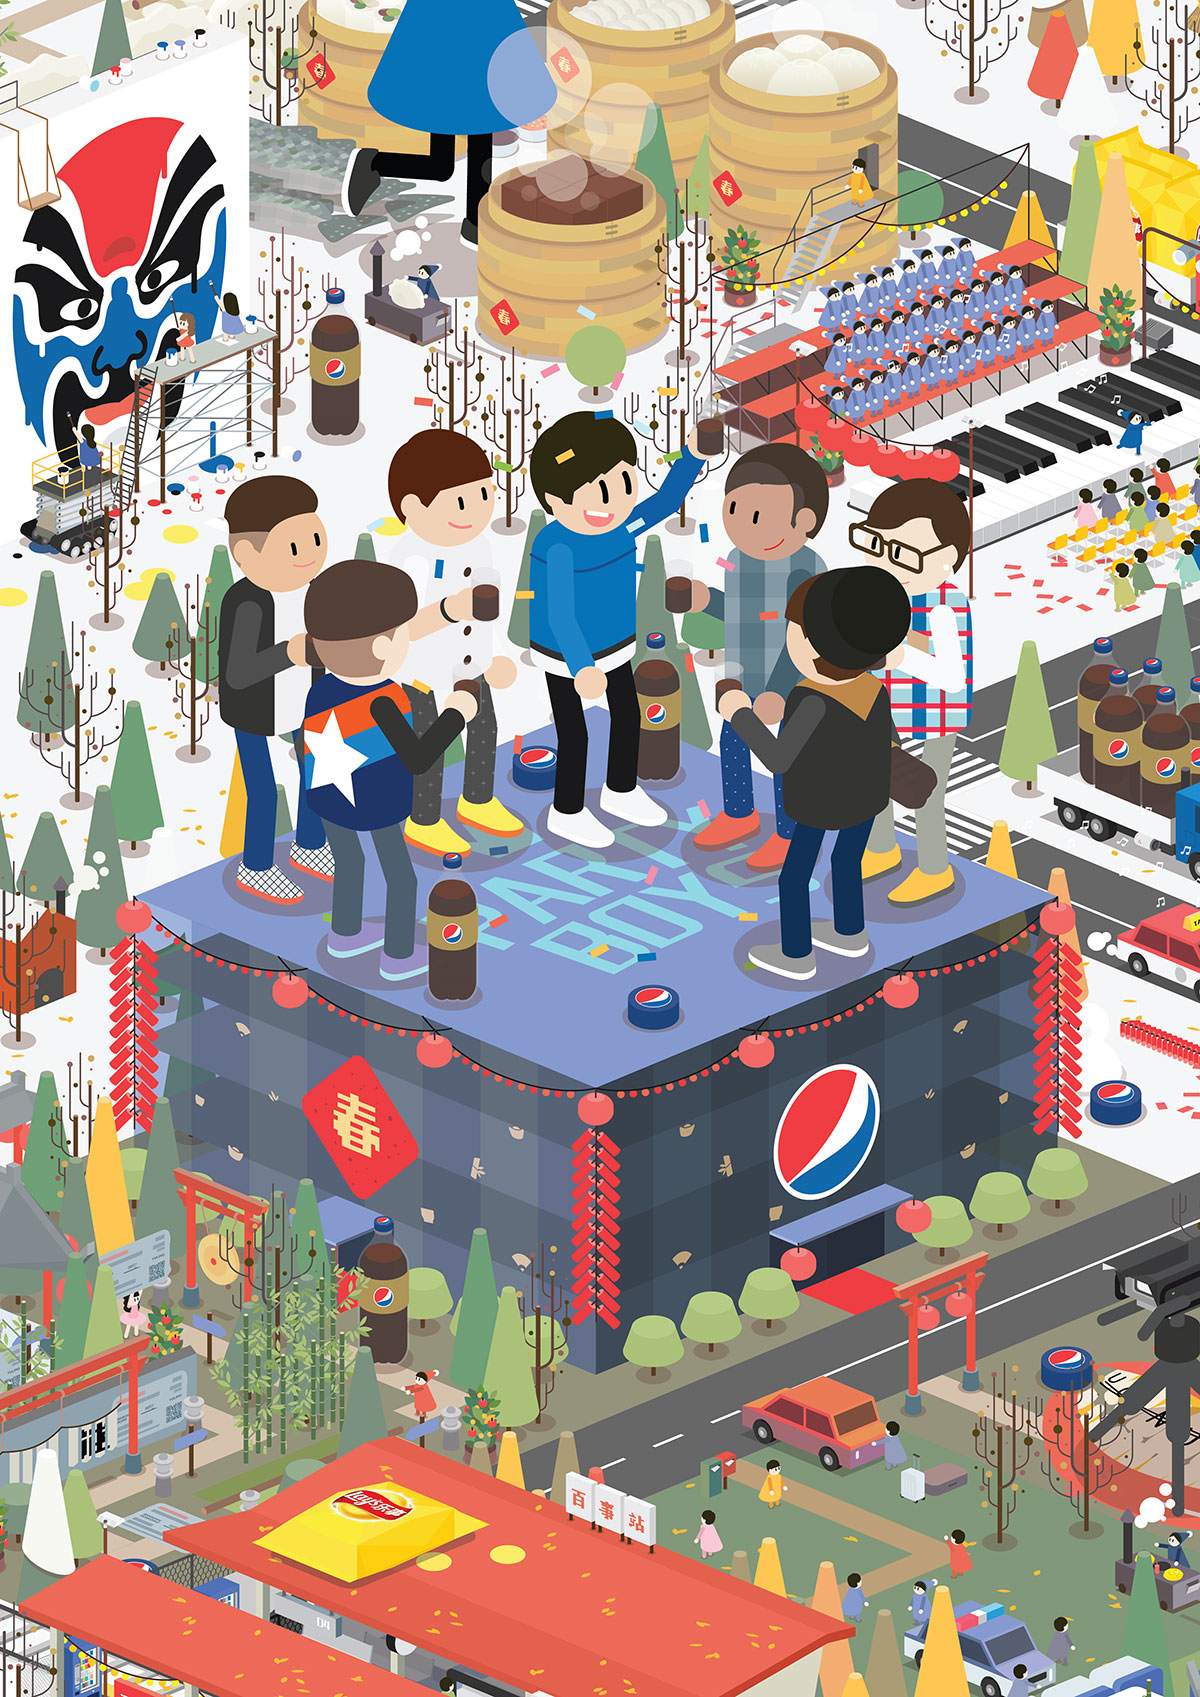 Pepsi Chinese New Year Illustration